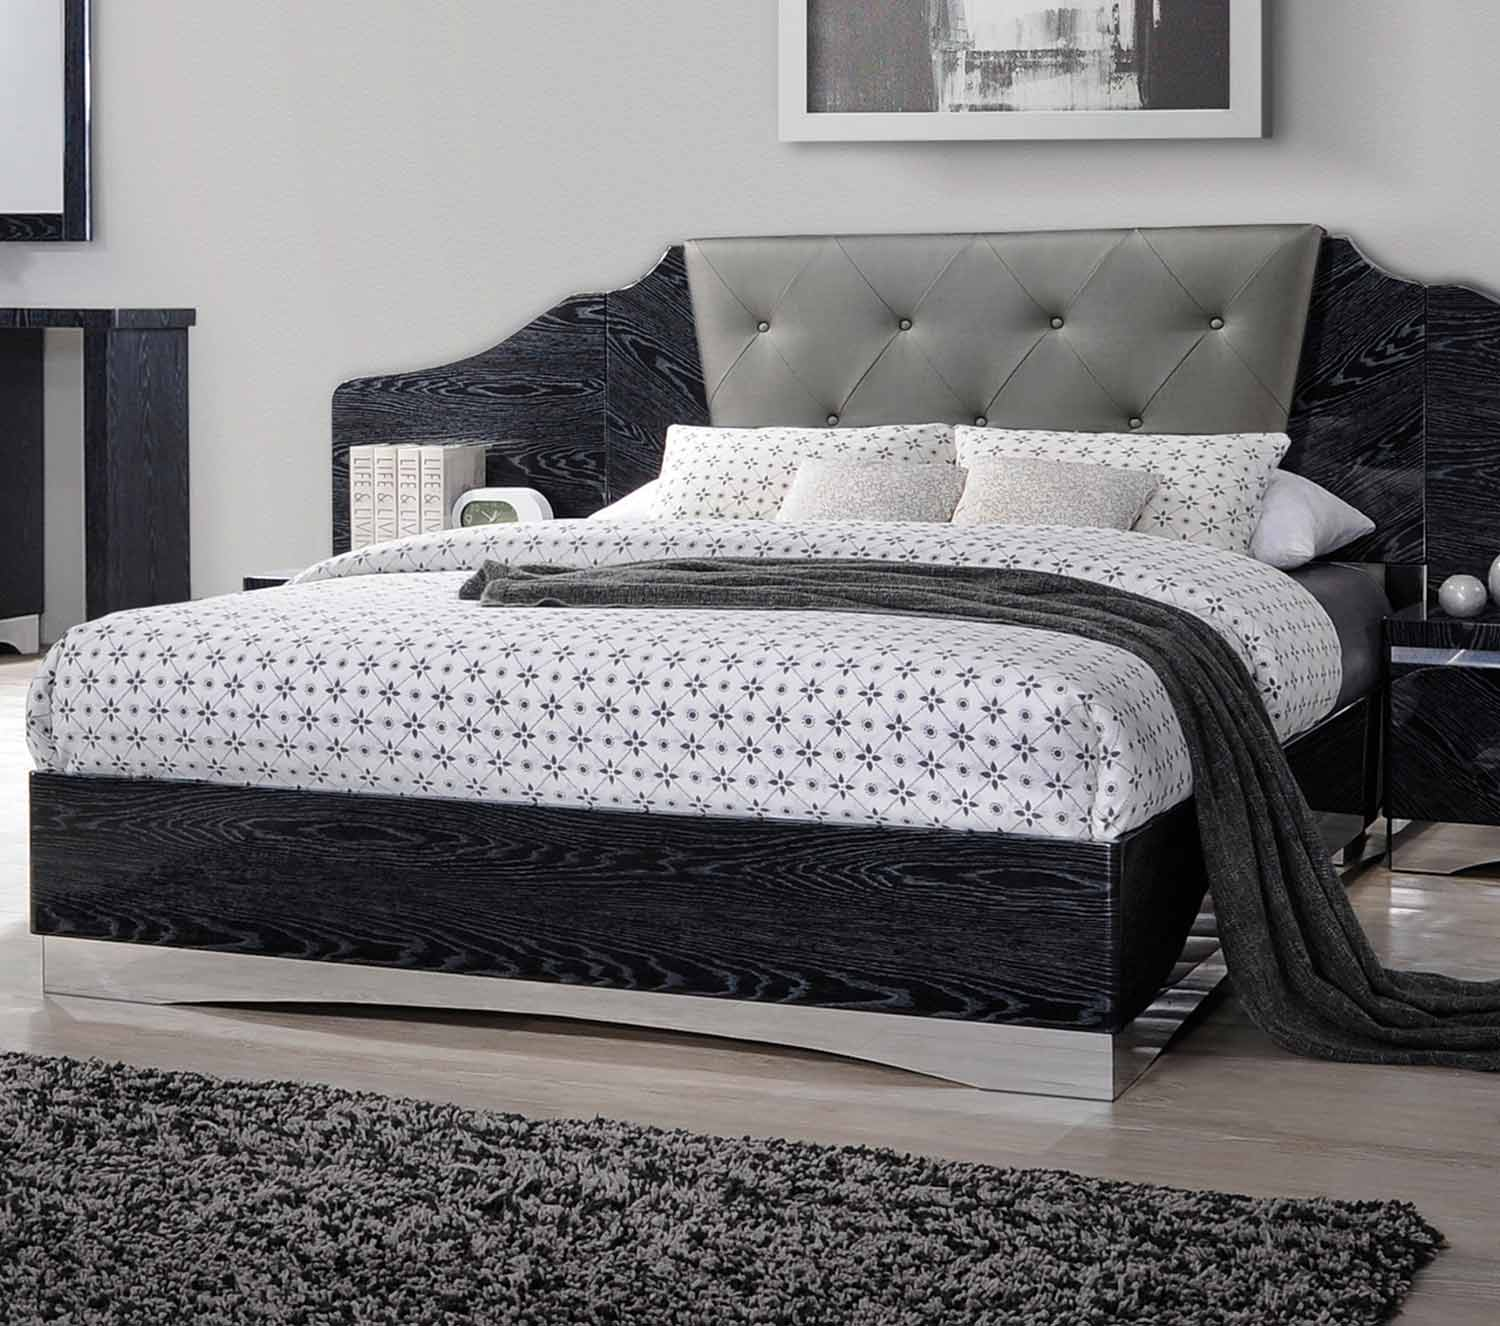 Coaster Alessandro Upholstered Bed - Glossy Black